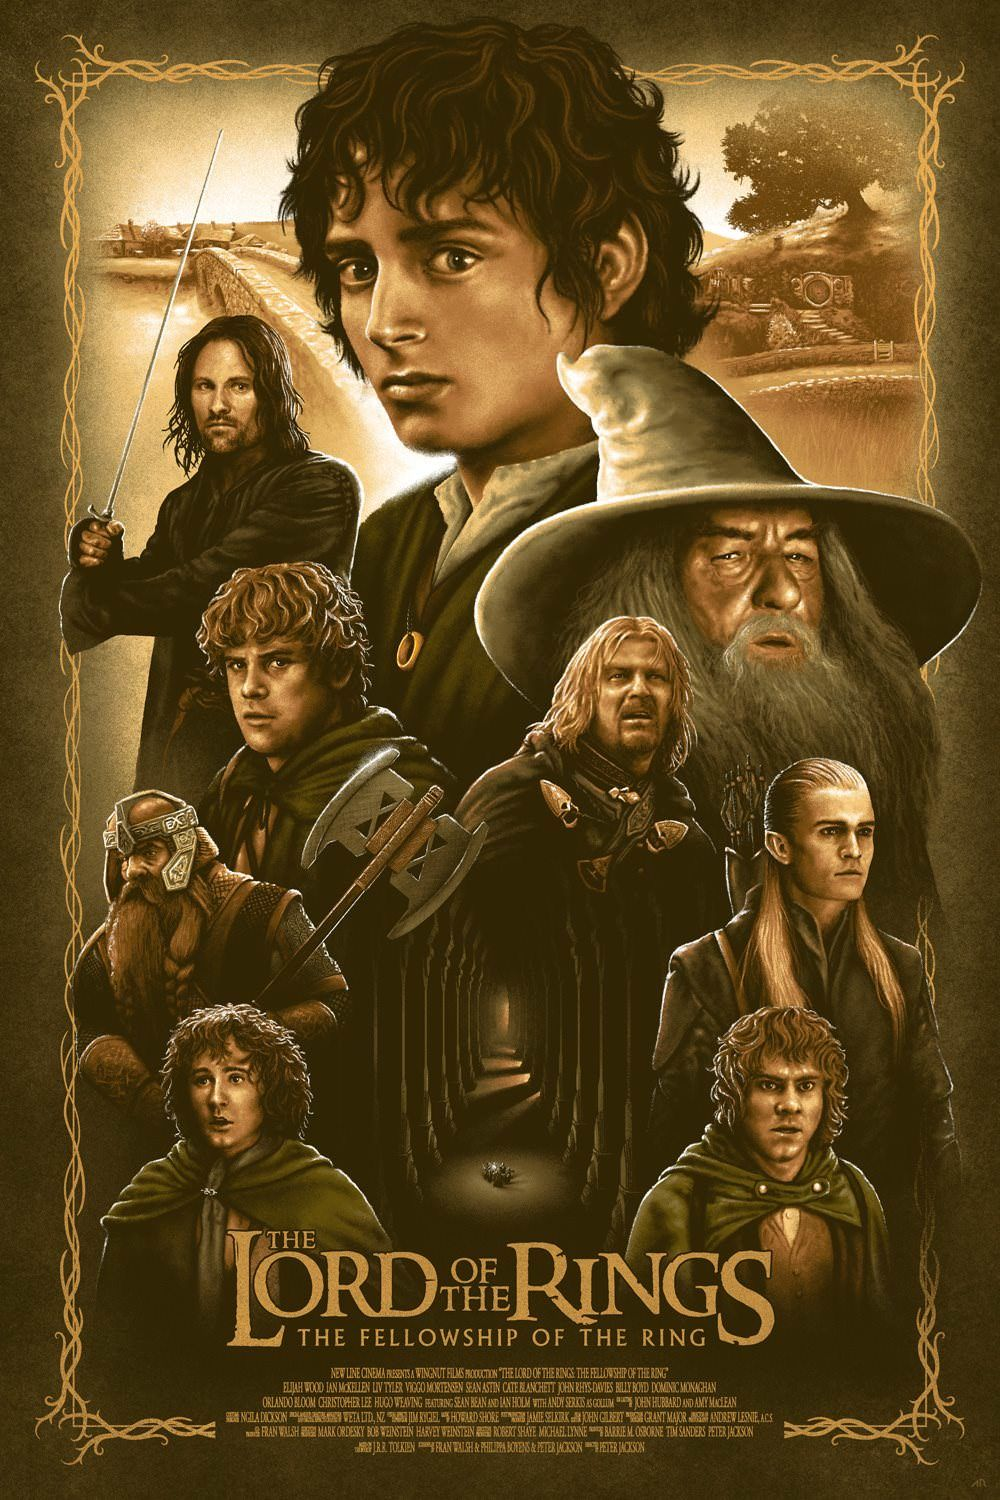 The Lord Of The Rings The Fellowship Of The Ring 2001 1000 X 1500 Fellowship Of The Ring The Hobbit Movies Lord Of The Rings